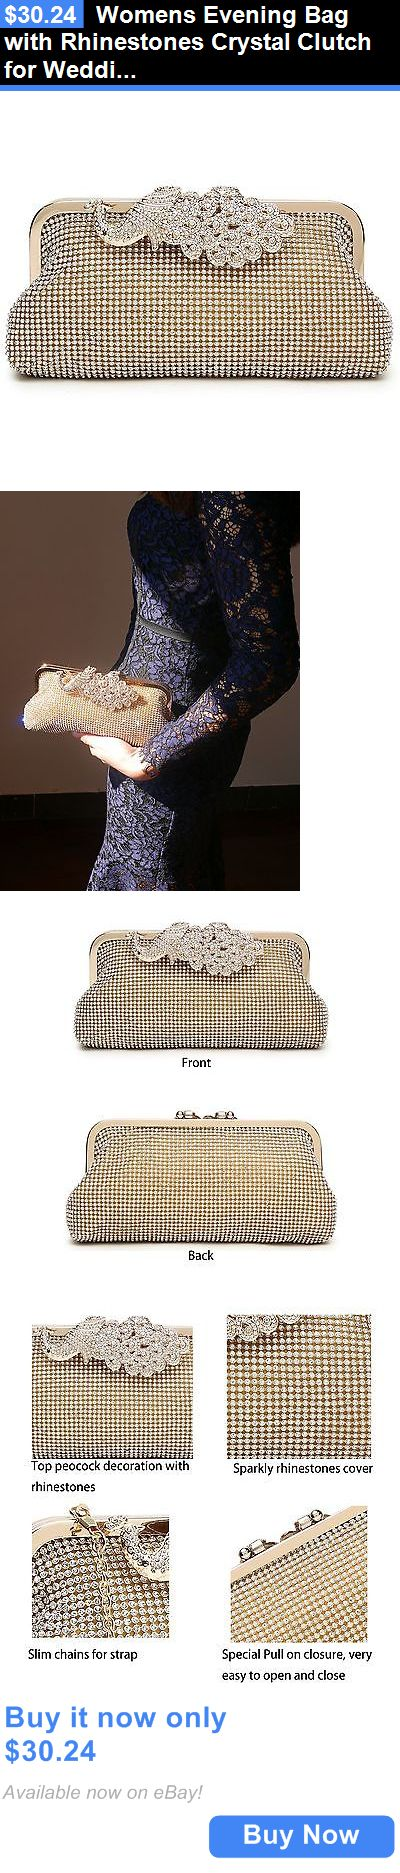 Bridal Handbags And Bags: Womens Evening Bag With Rhinestones Crystal Clutch For Wedding And Party Gold3 BUY IT NOW ONLY: $30.24